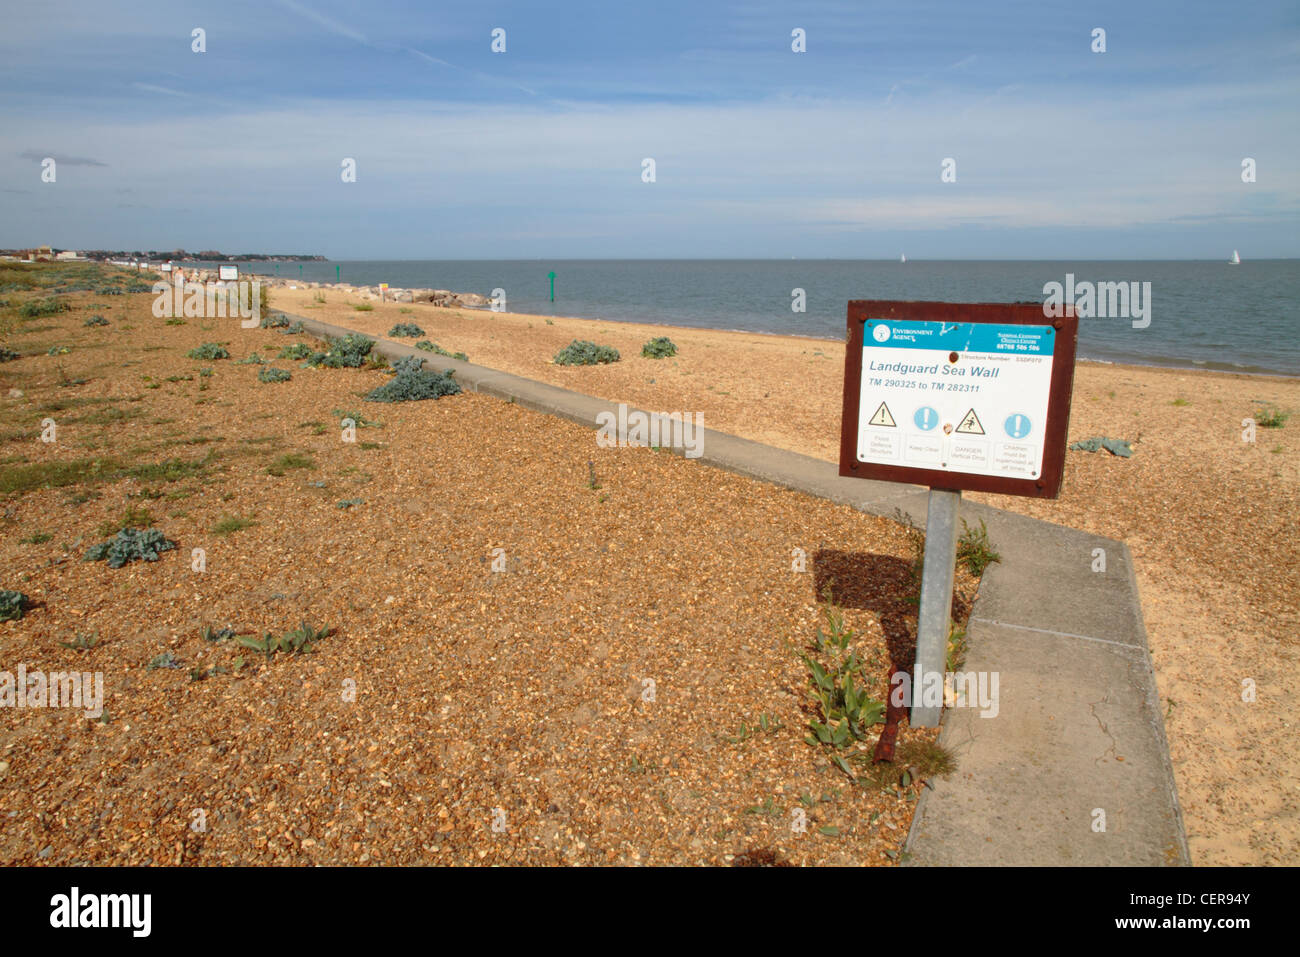 The sea wall and beach at Landguard Point, the most southerly part of Suffolk. - Stock Image